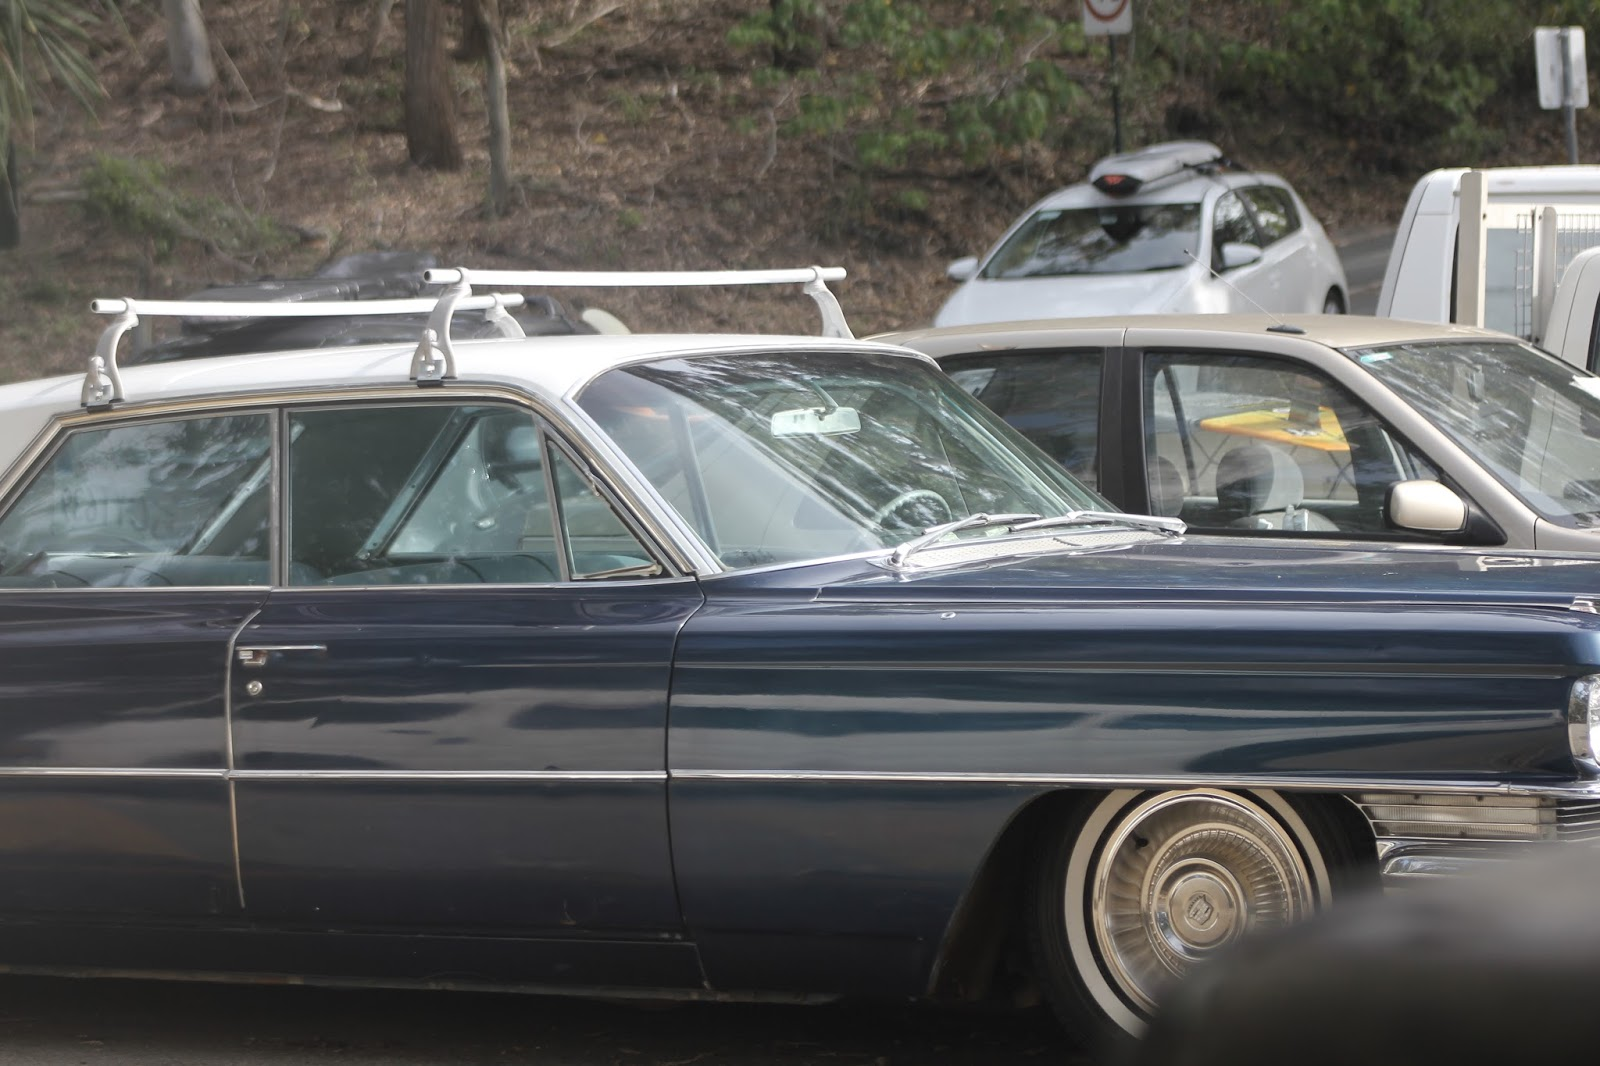 11-03-2016-australia-siebert-surfboards-20